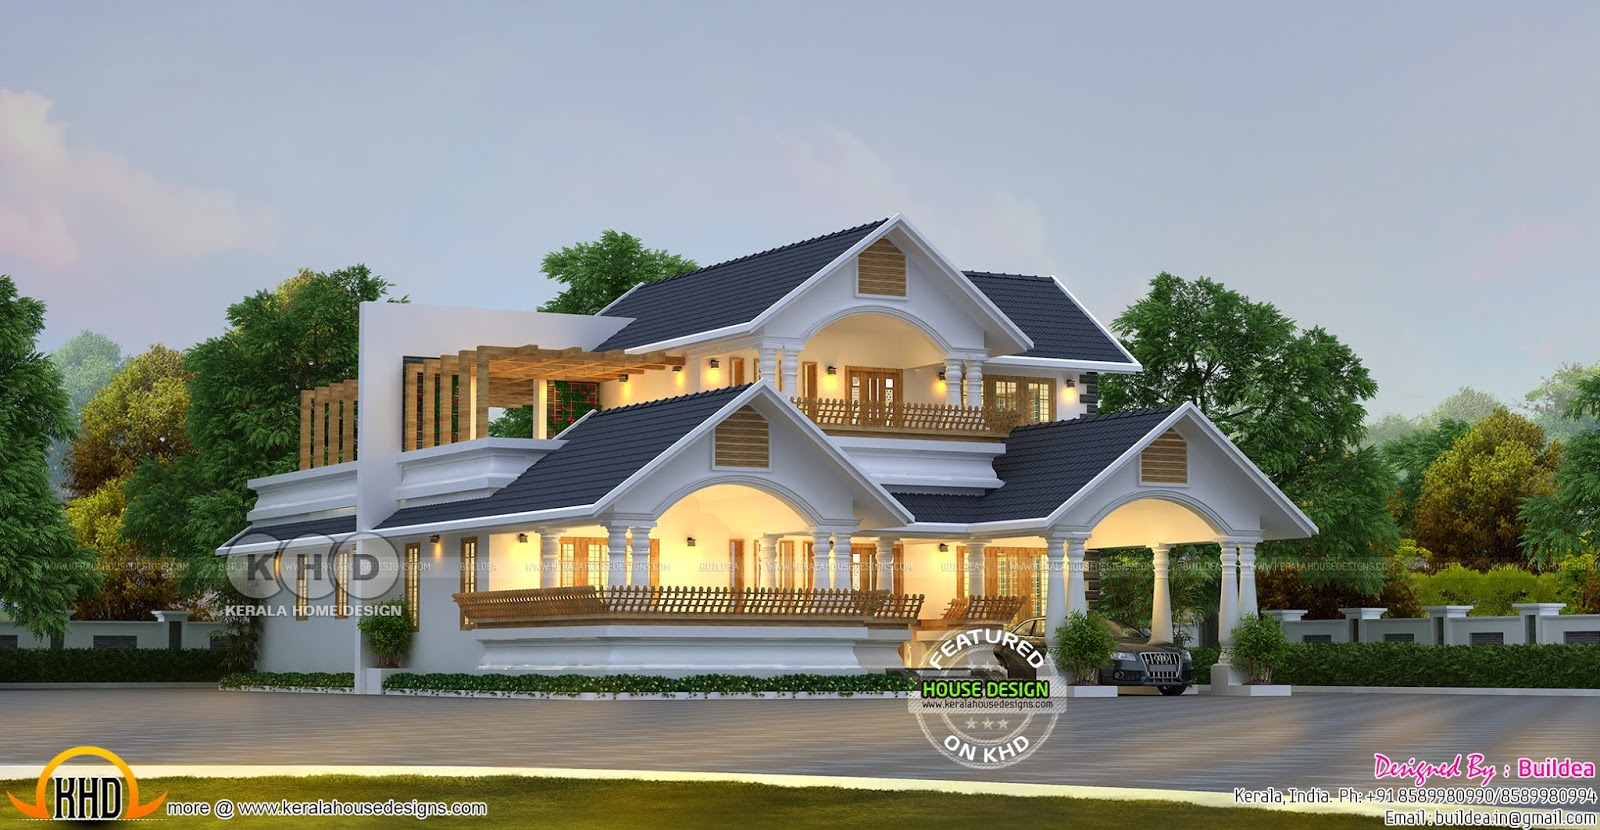 Traditional   contemporary house 2562 sq ft   Kerala home design     Traditional   contemporary house 2562 sq ft